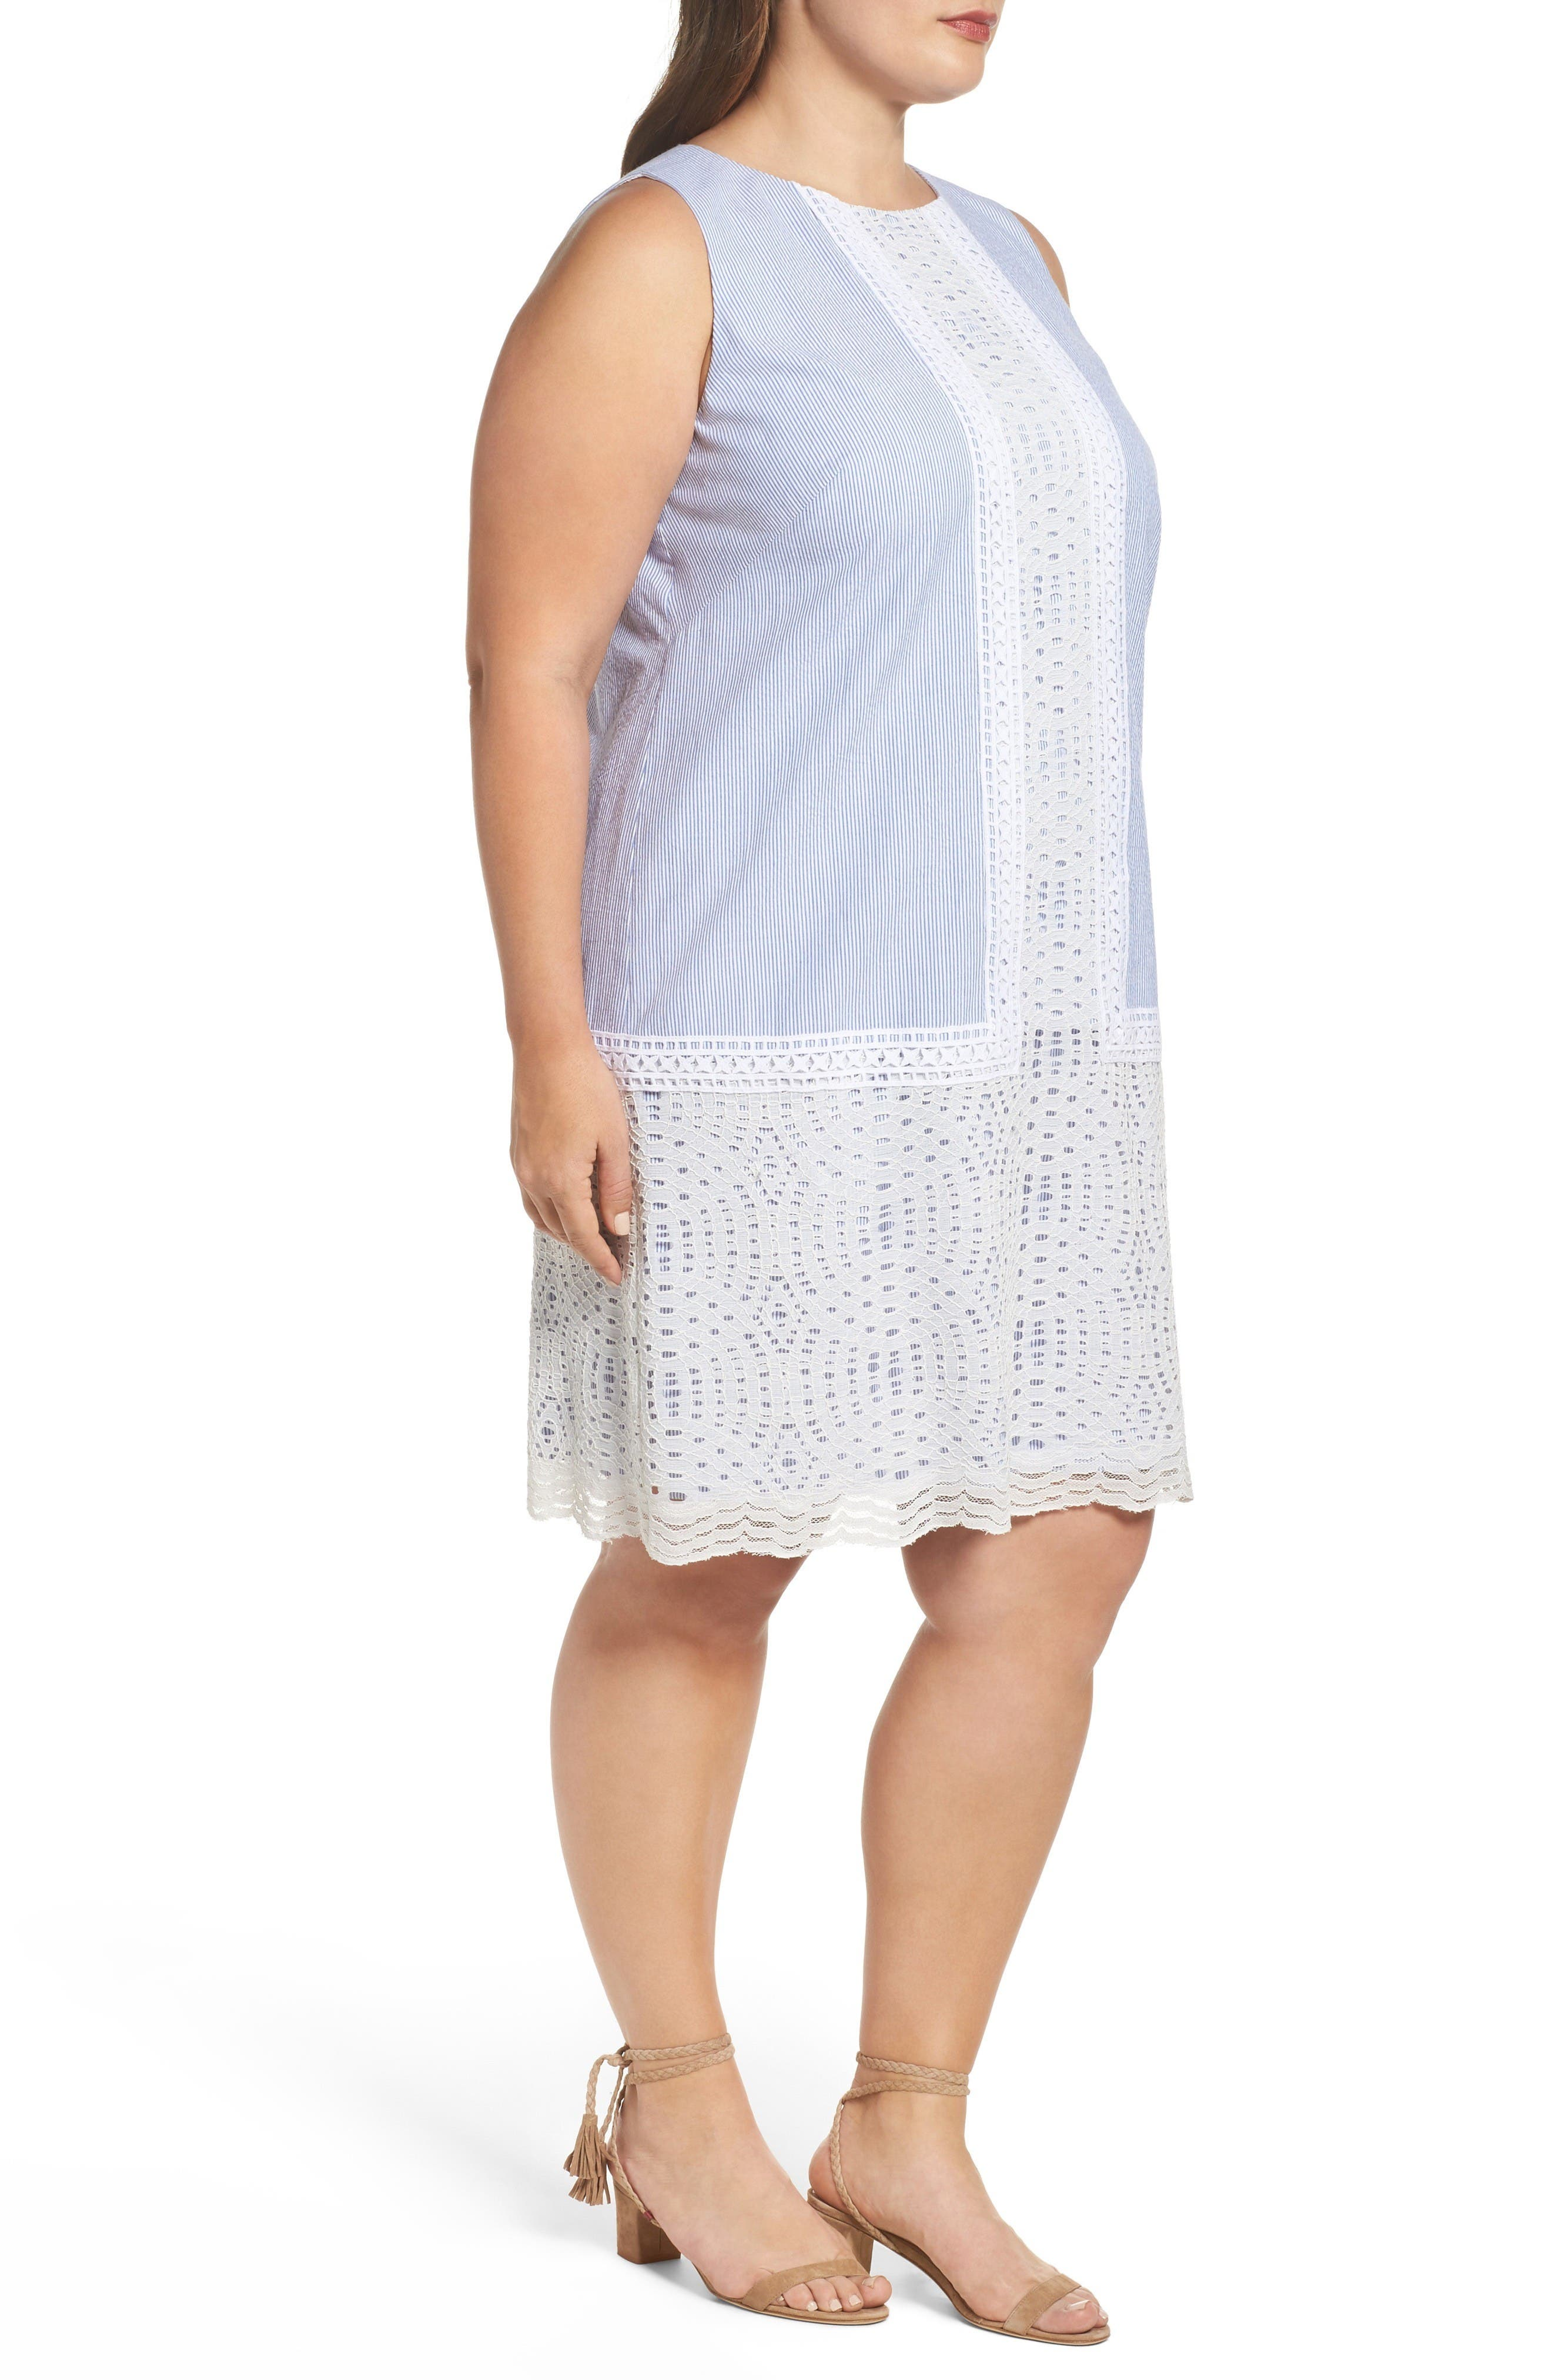 Lace Overlay Shift Dress,                             Alternate thumbnail 4, color,                             Blue White